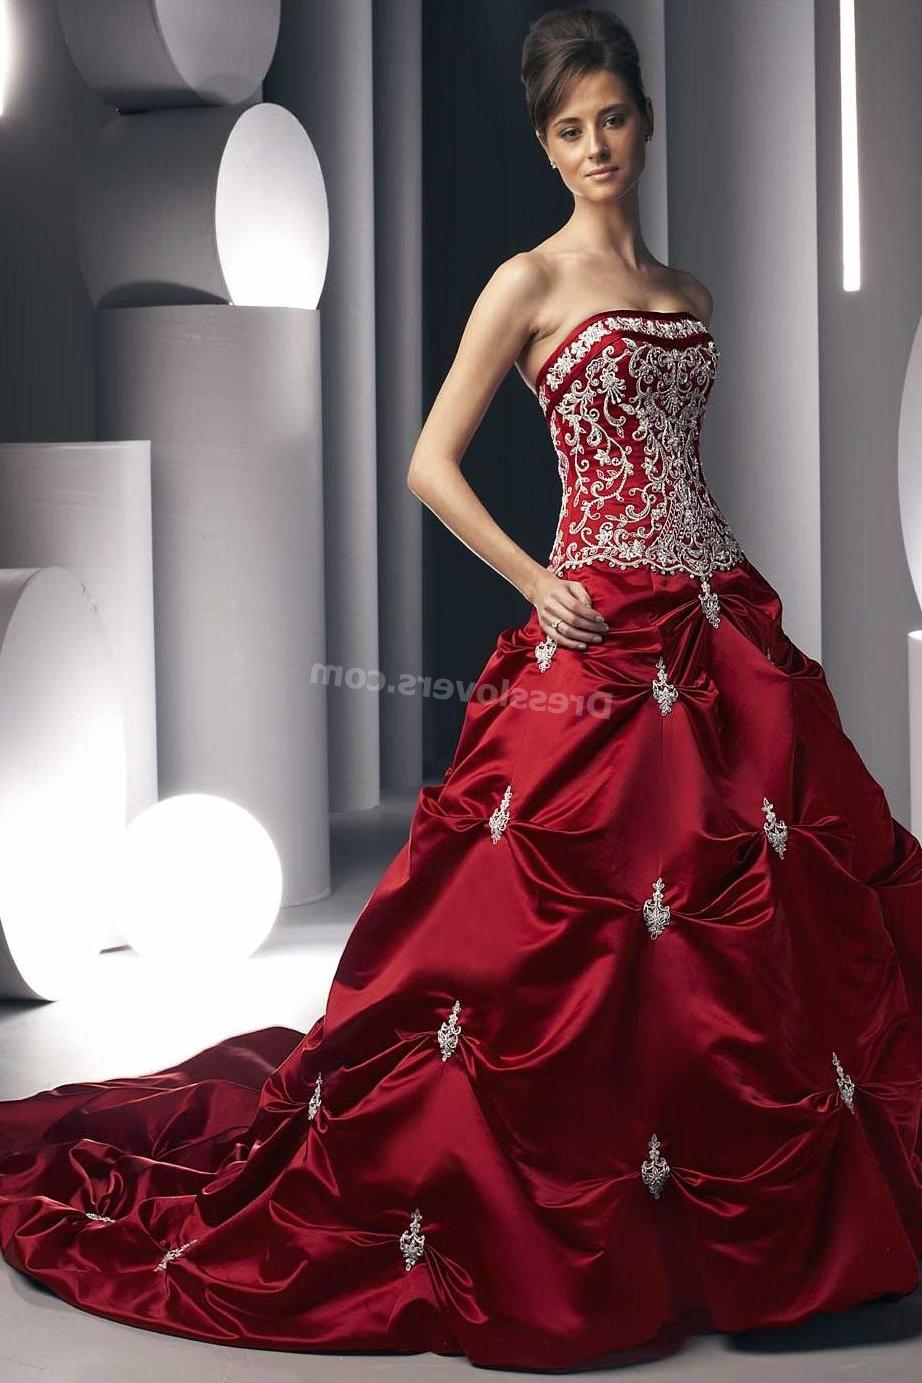 Red Wedding Dress with